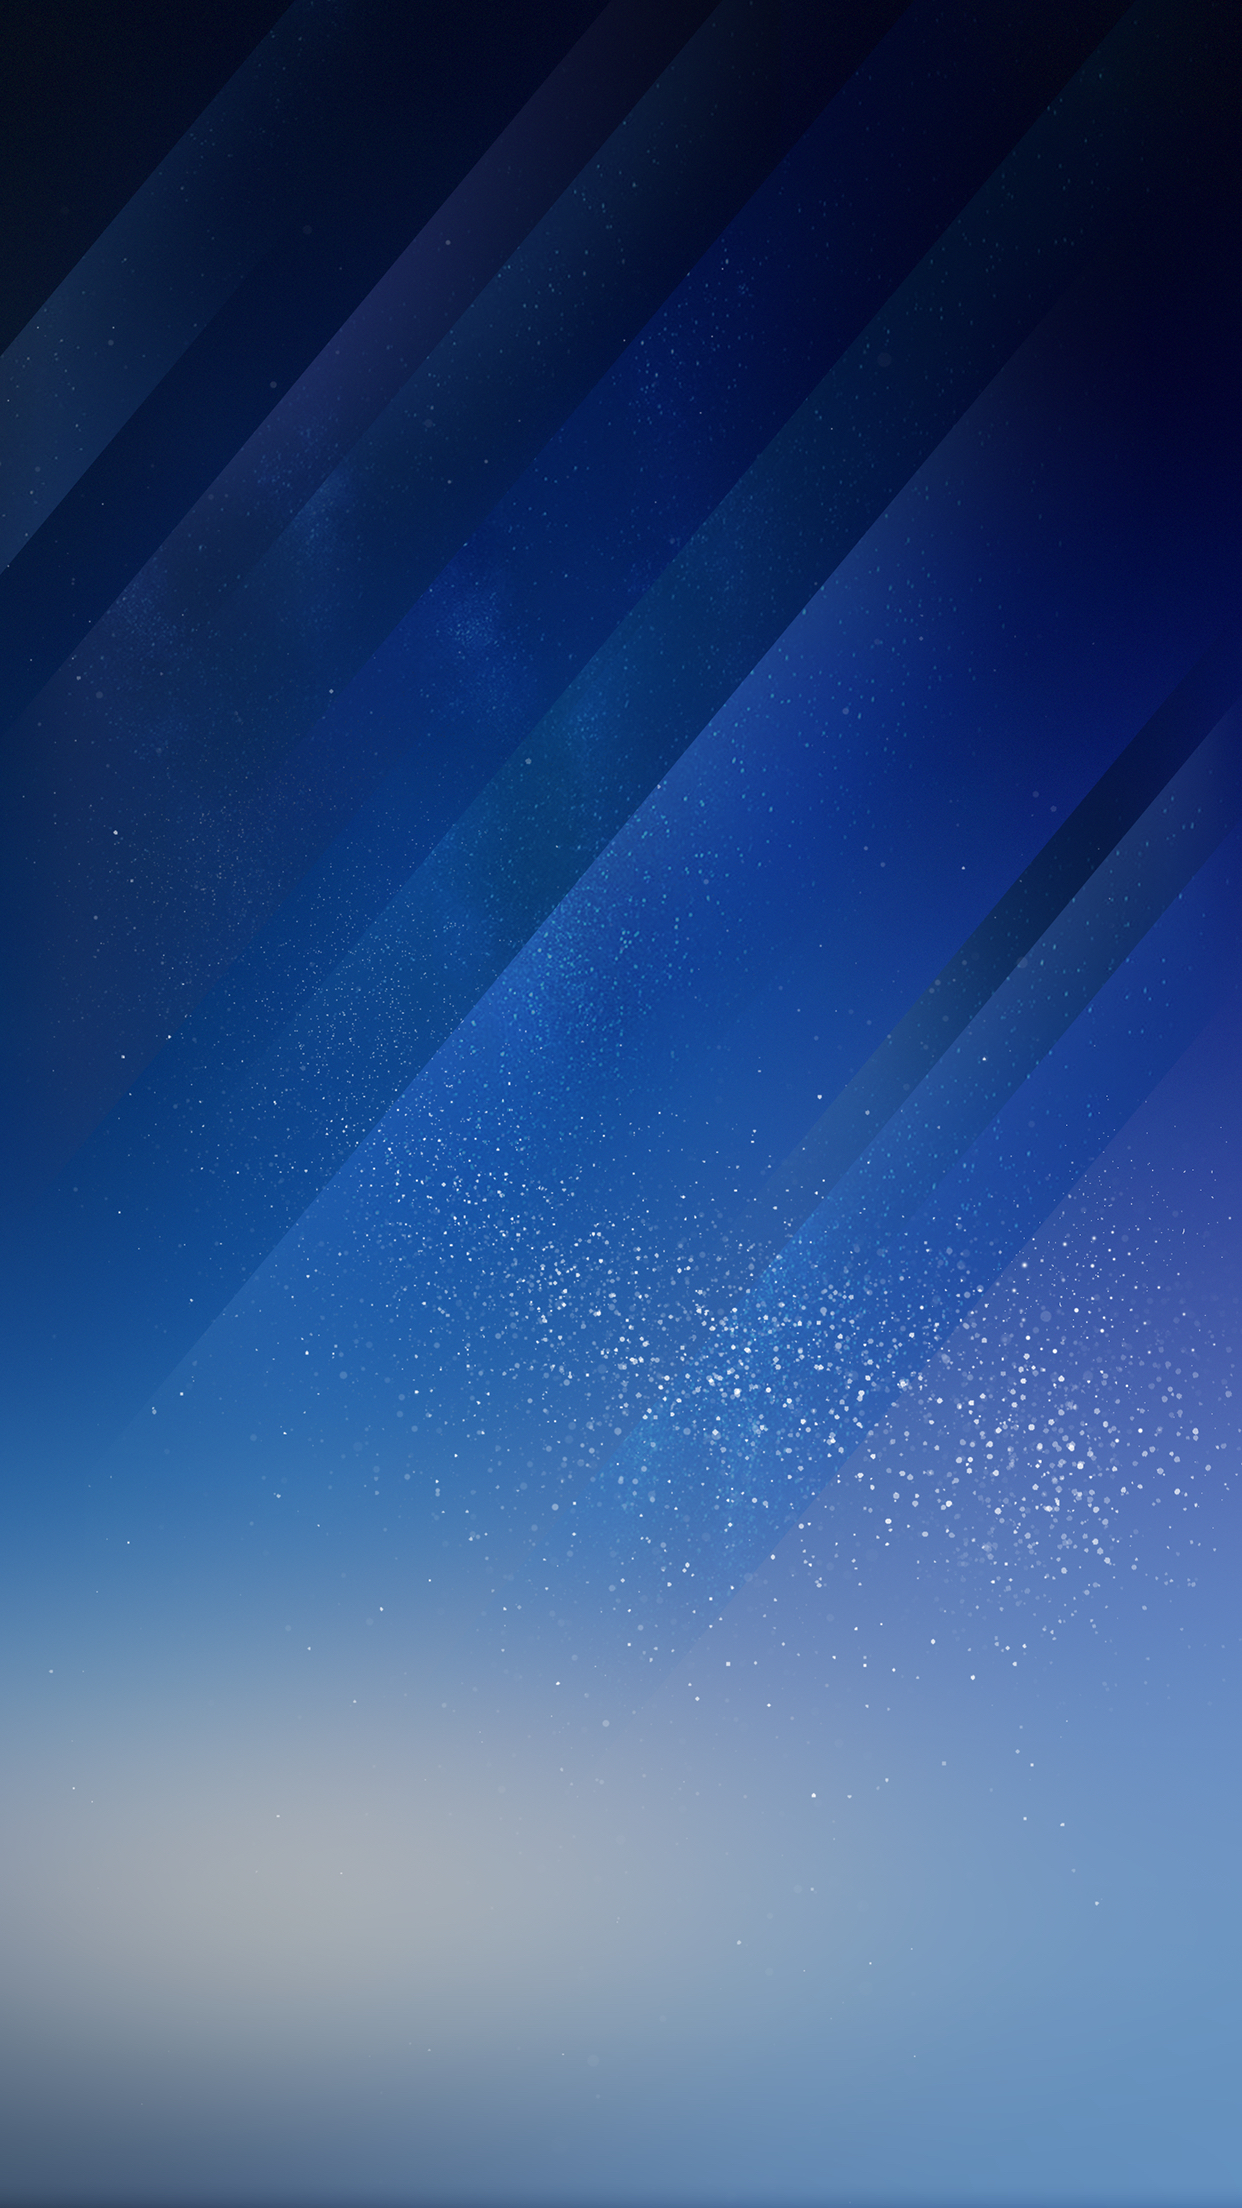 49 S8 Samsung Wallpaper Default On Wallpapersafari